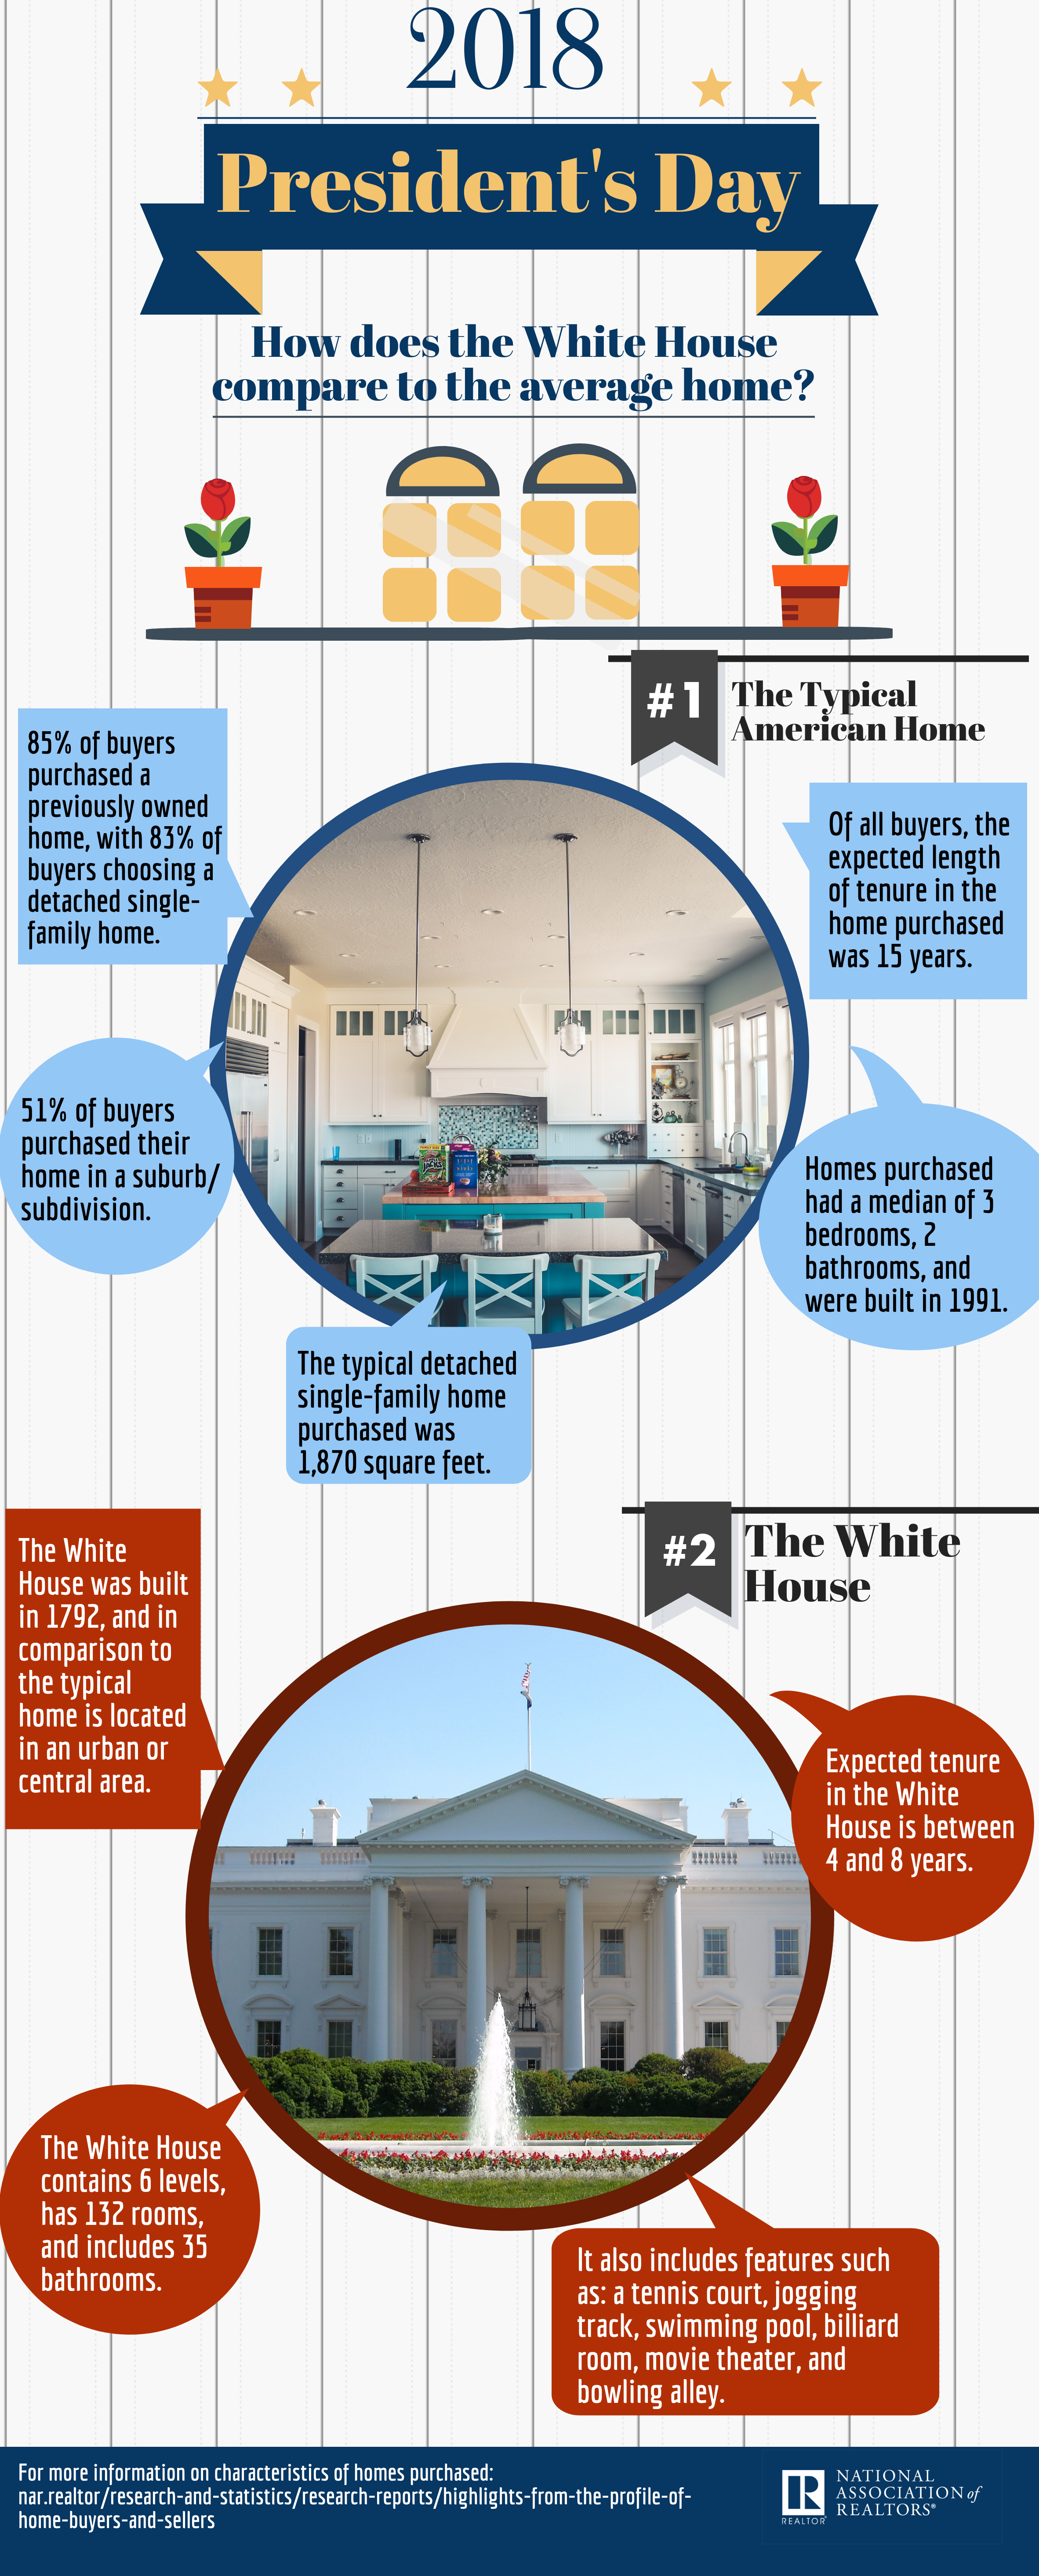 2018 President's Day White House infographic from NAR shared by Live in MT Real Estate Lynn Kenyon #liveinmt